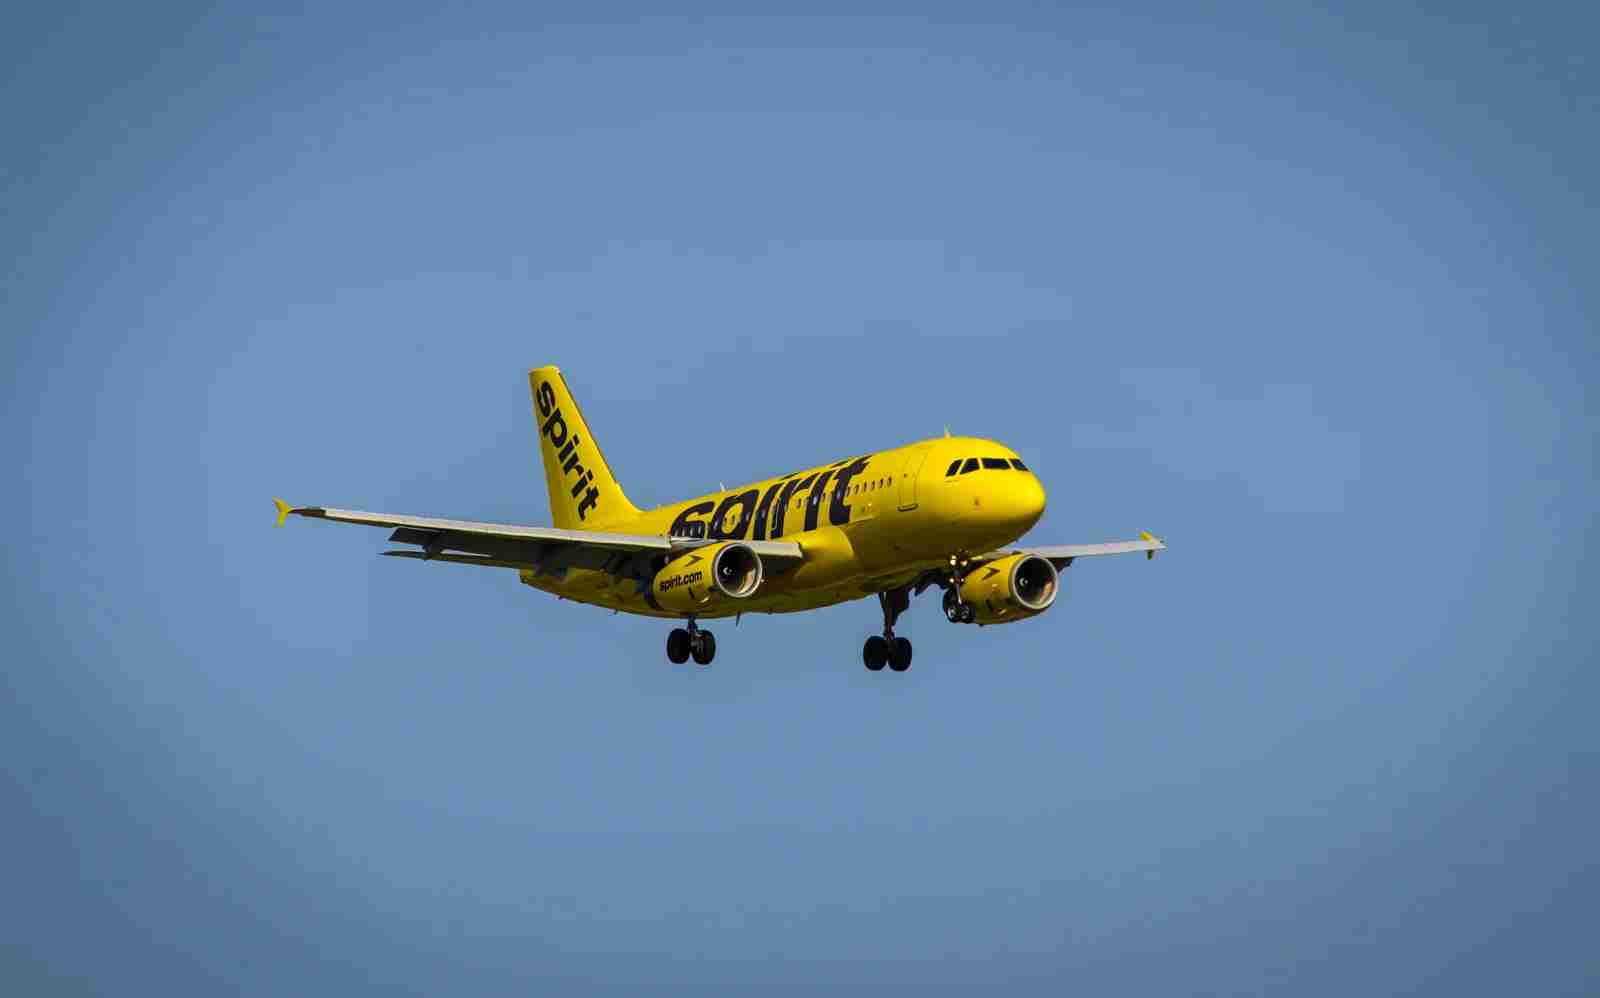 A Spirit Airlines Airbus A319. (Photo courtesy of Spirit)